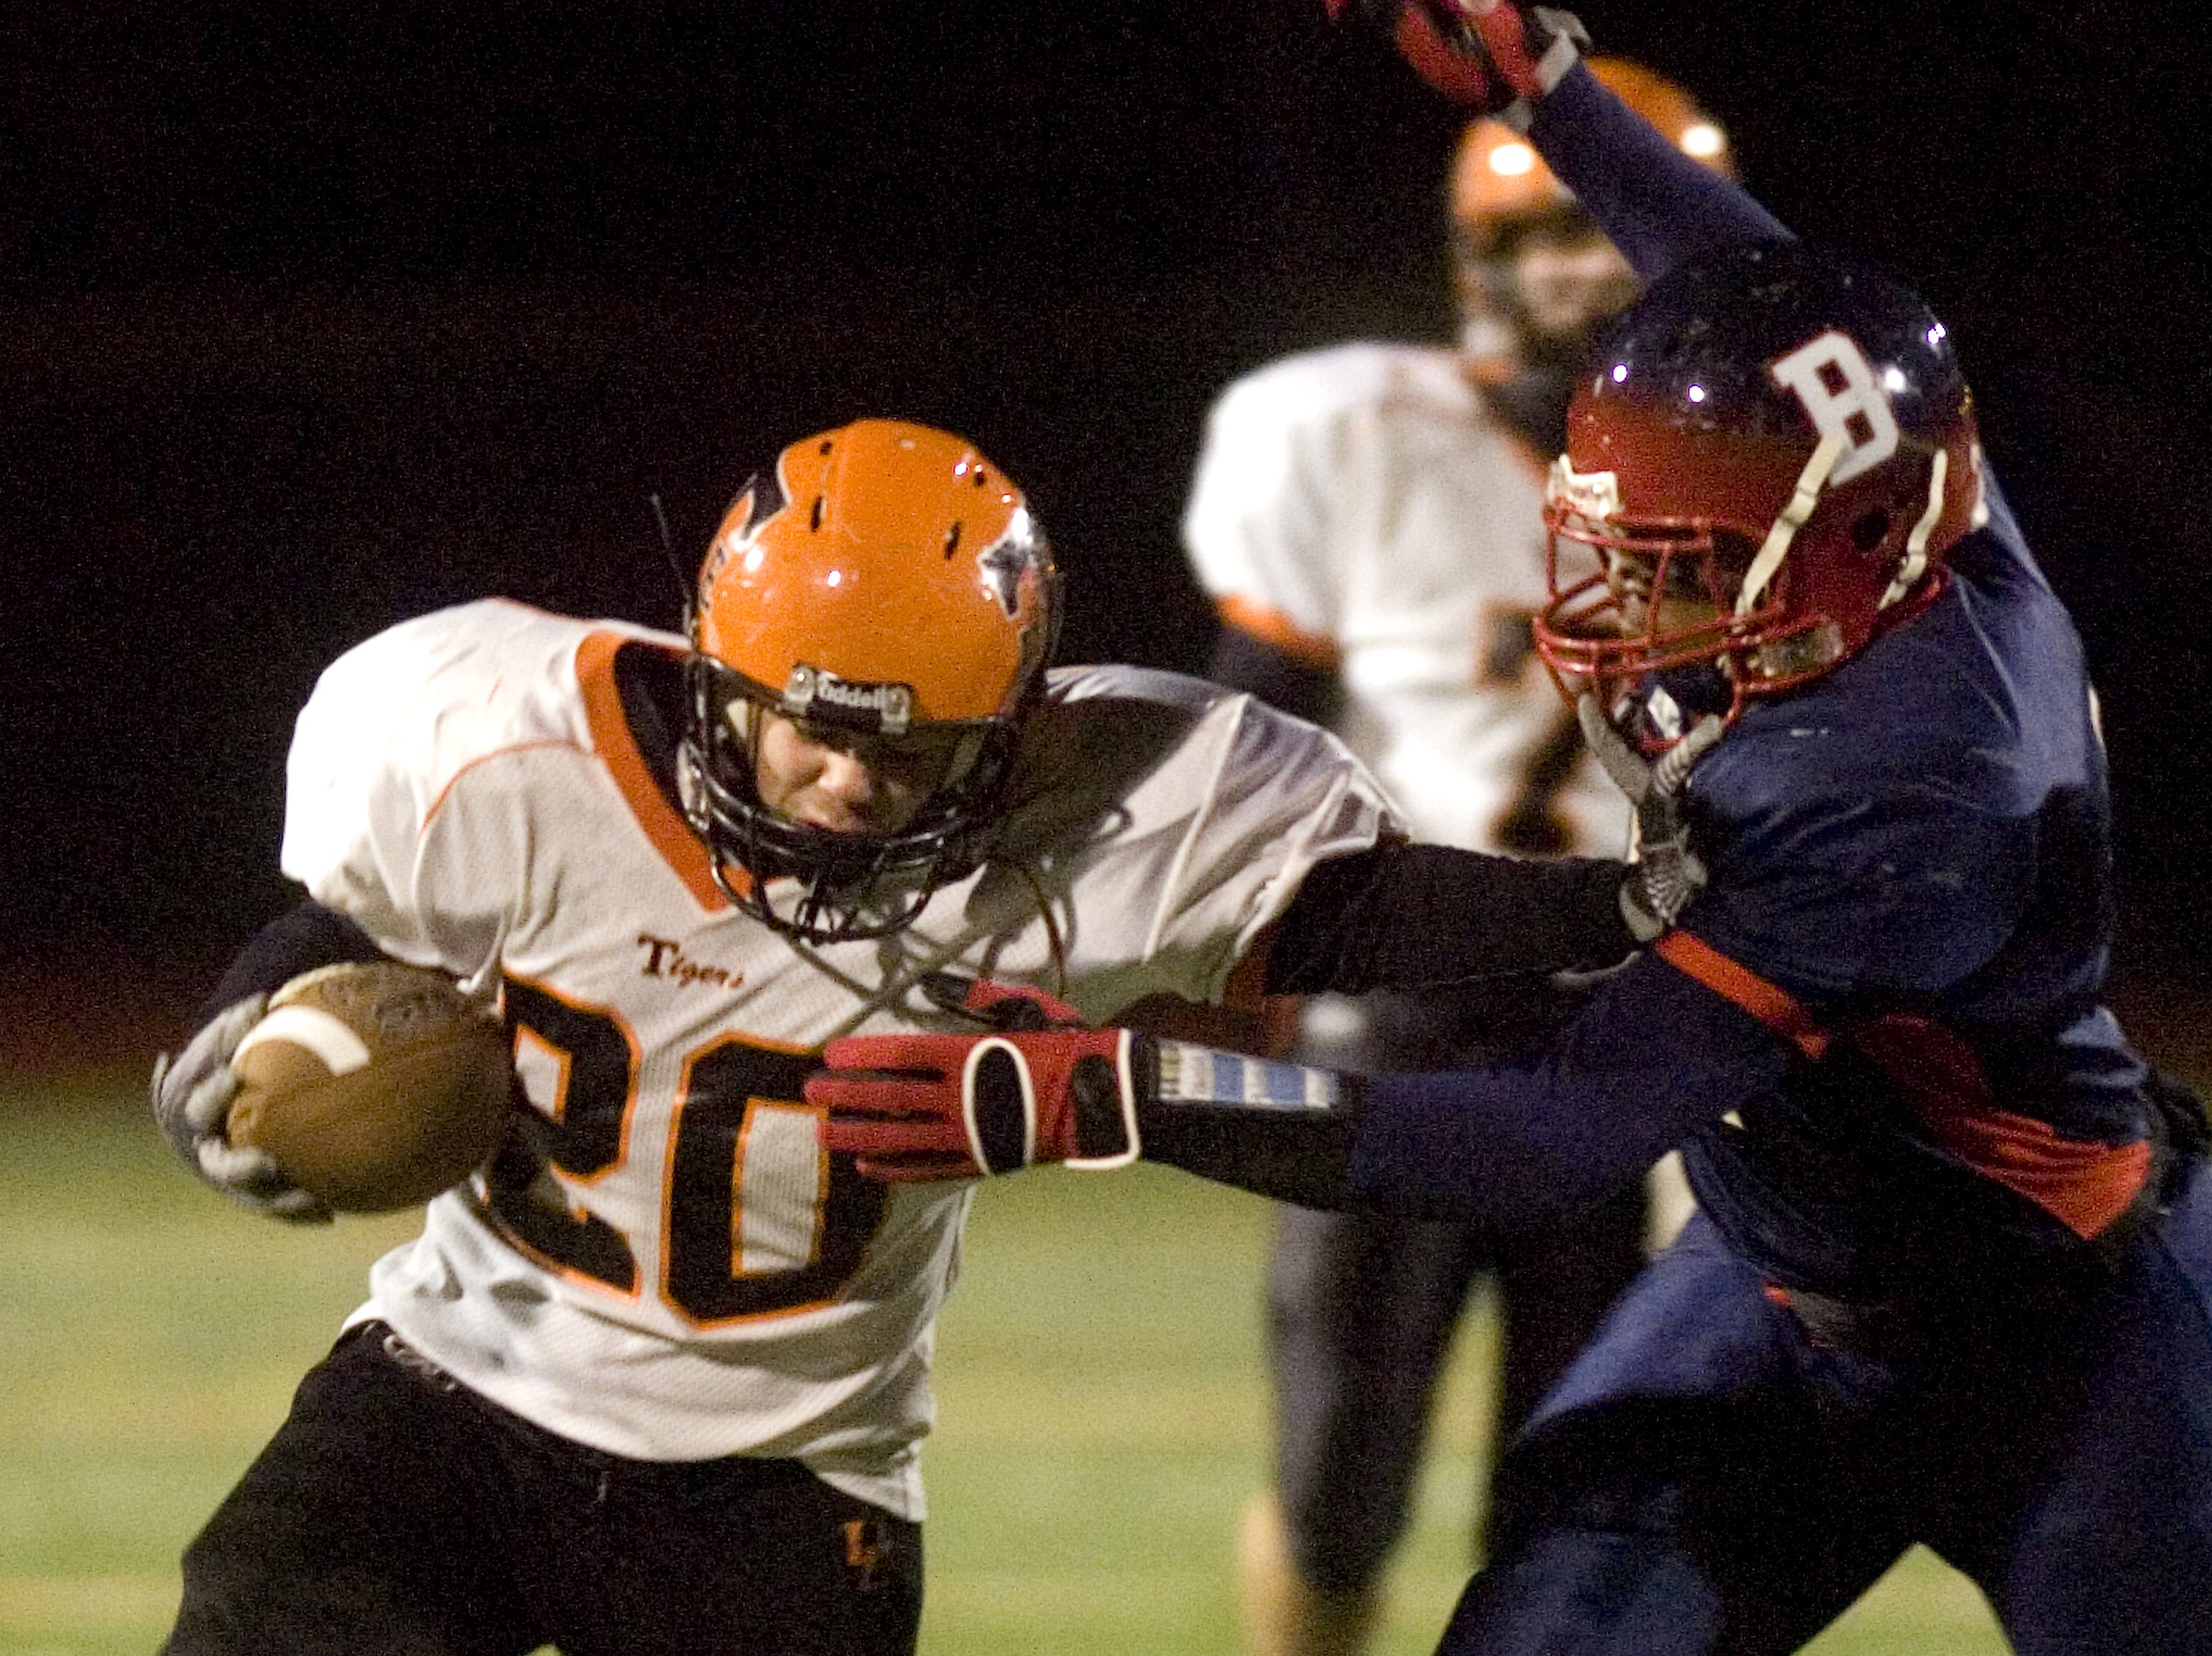 Union-Endicott's William Bedoya, left, stiff arms Binghamton's Delroy Young in the third quarter of a 2009 game at Dick Hoover Stadium in Vestal.